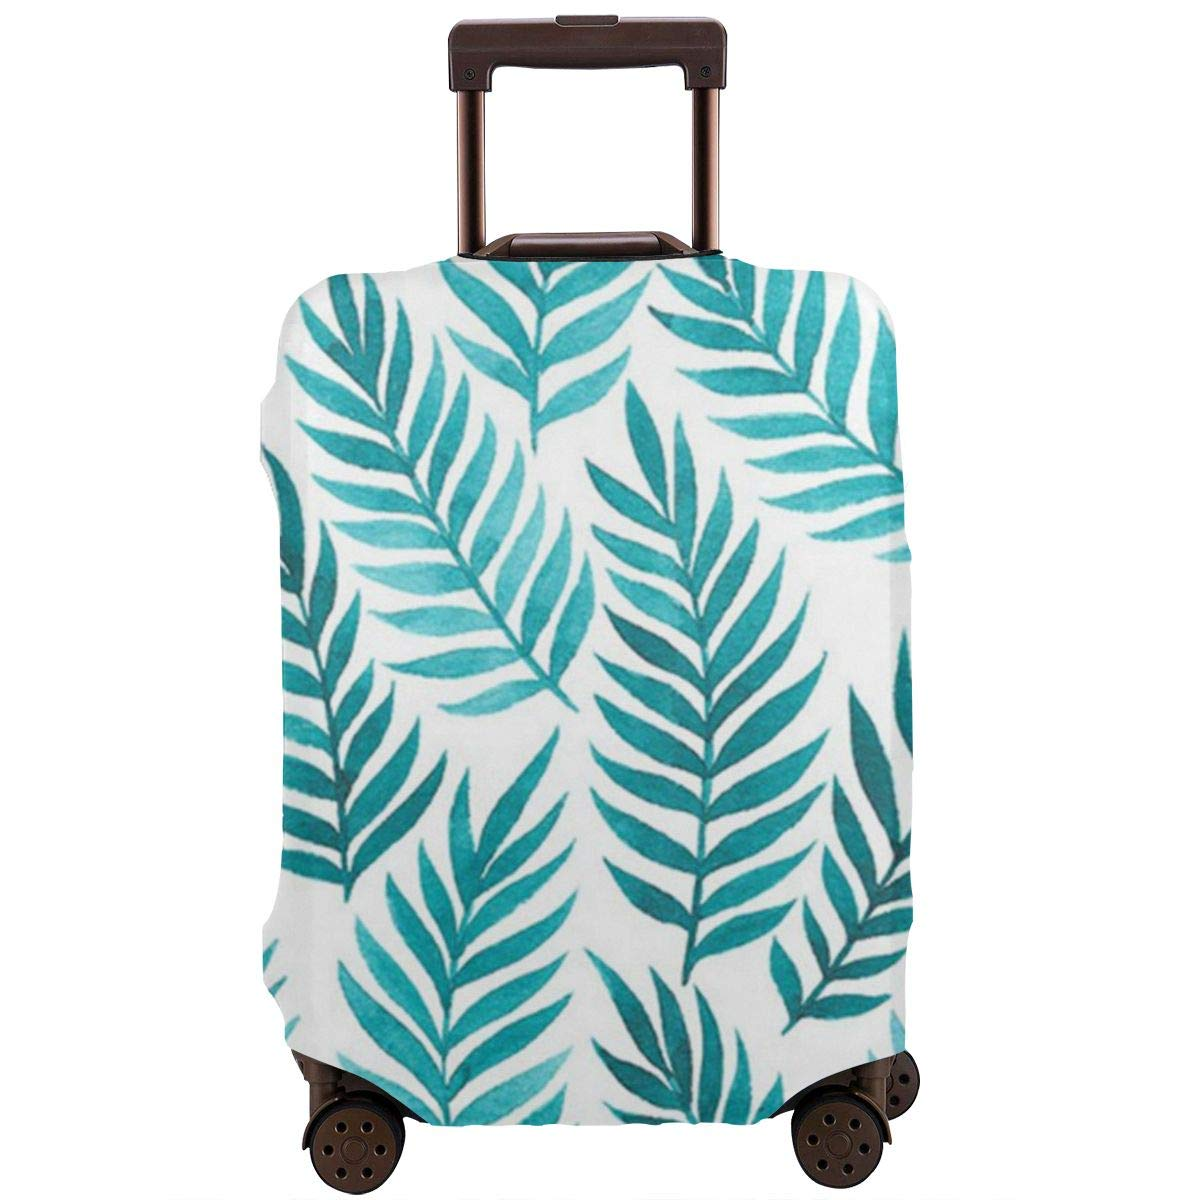 JHNDKJS Watercolor Leaves Seamless Pattern Travel Luggage Cover Baggage Suitcase Protector Fit for 12-18 Inch Luggage